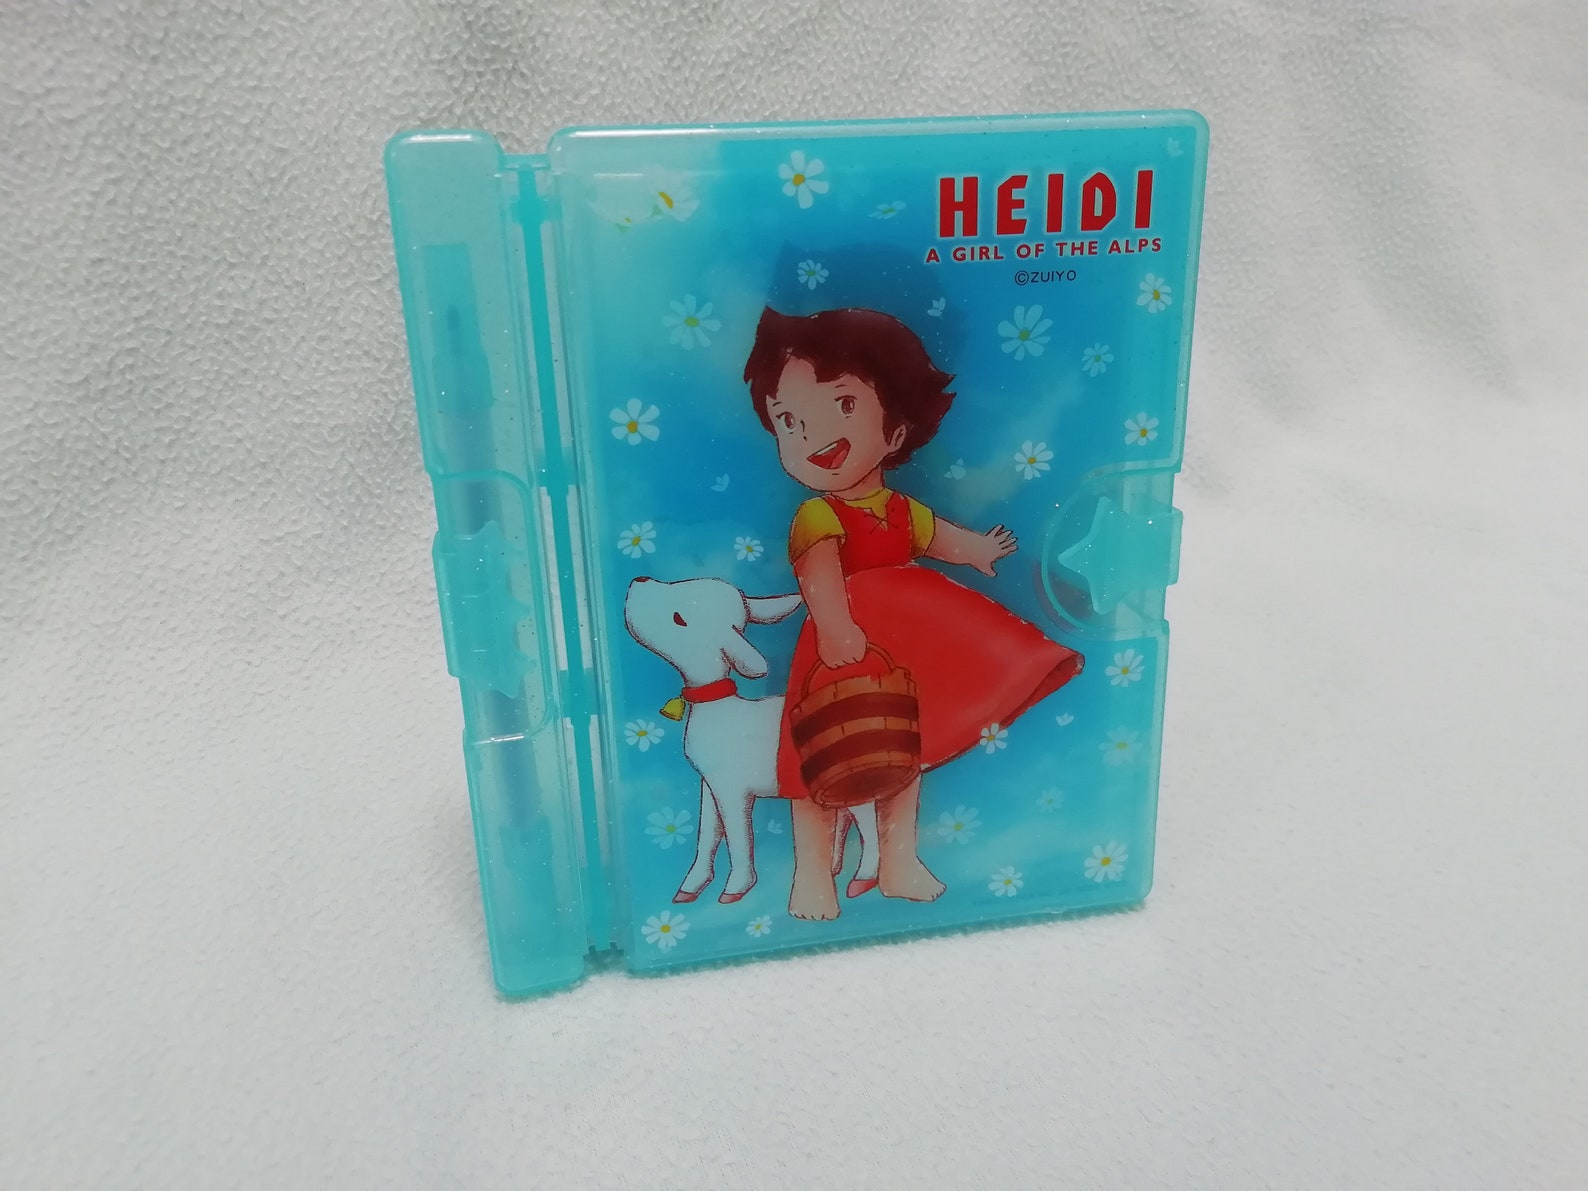 RARE Vintage Heidi A Girl of the Alps Letter Envelope Pencil Case Folder Set / Made in Japan / 1974